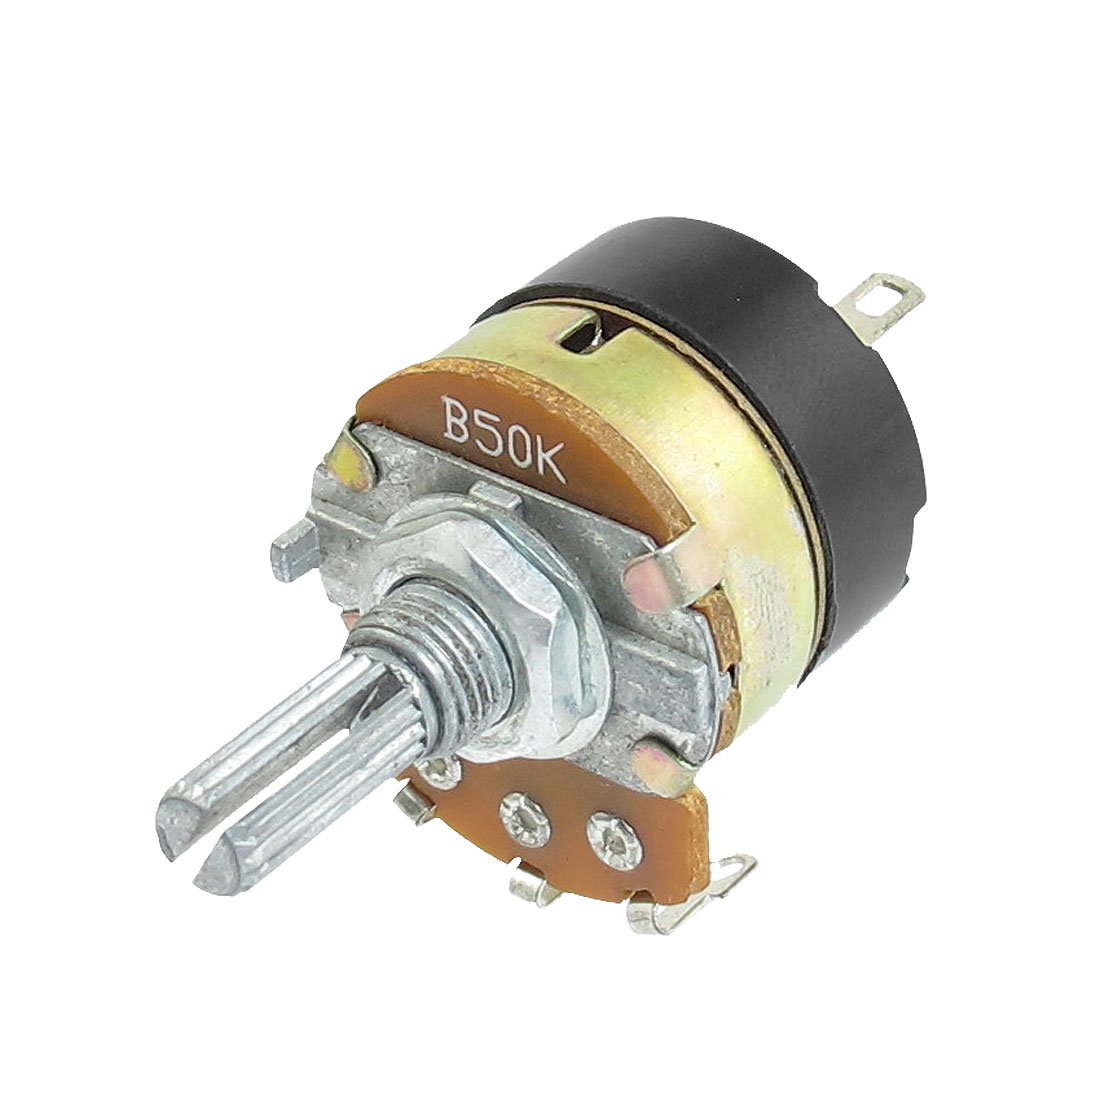 50K ohm B50K 3 Terminals Single Turn Rotary Taper Carbon Potentiometer